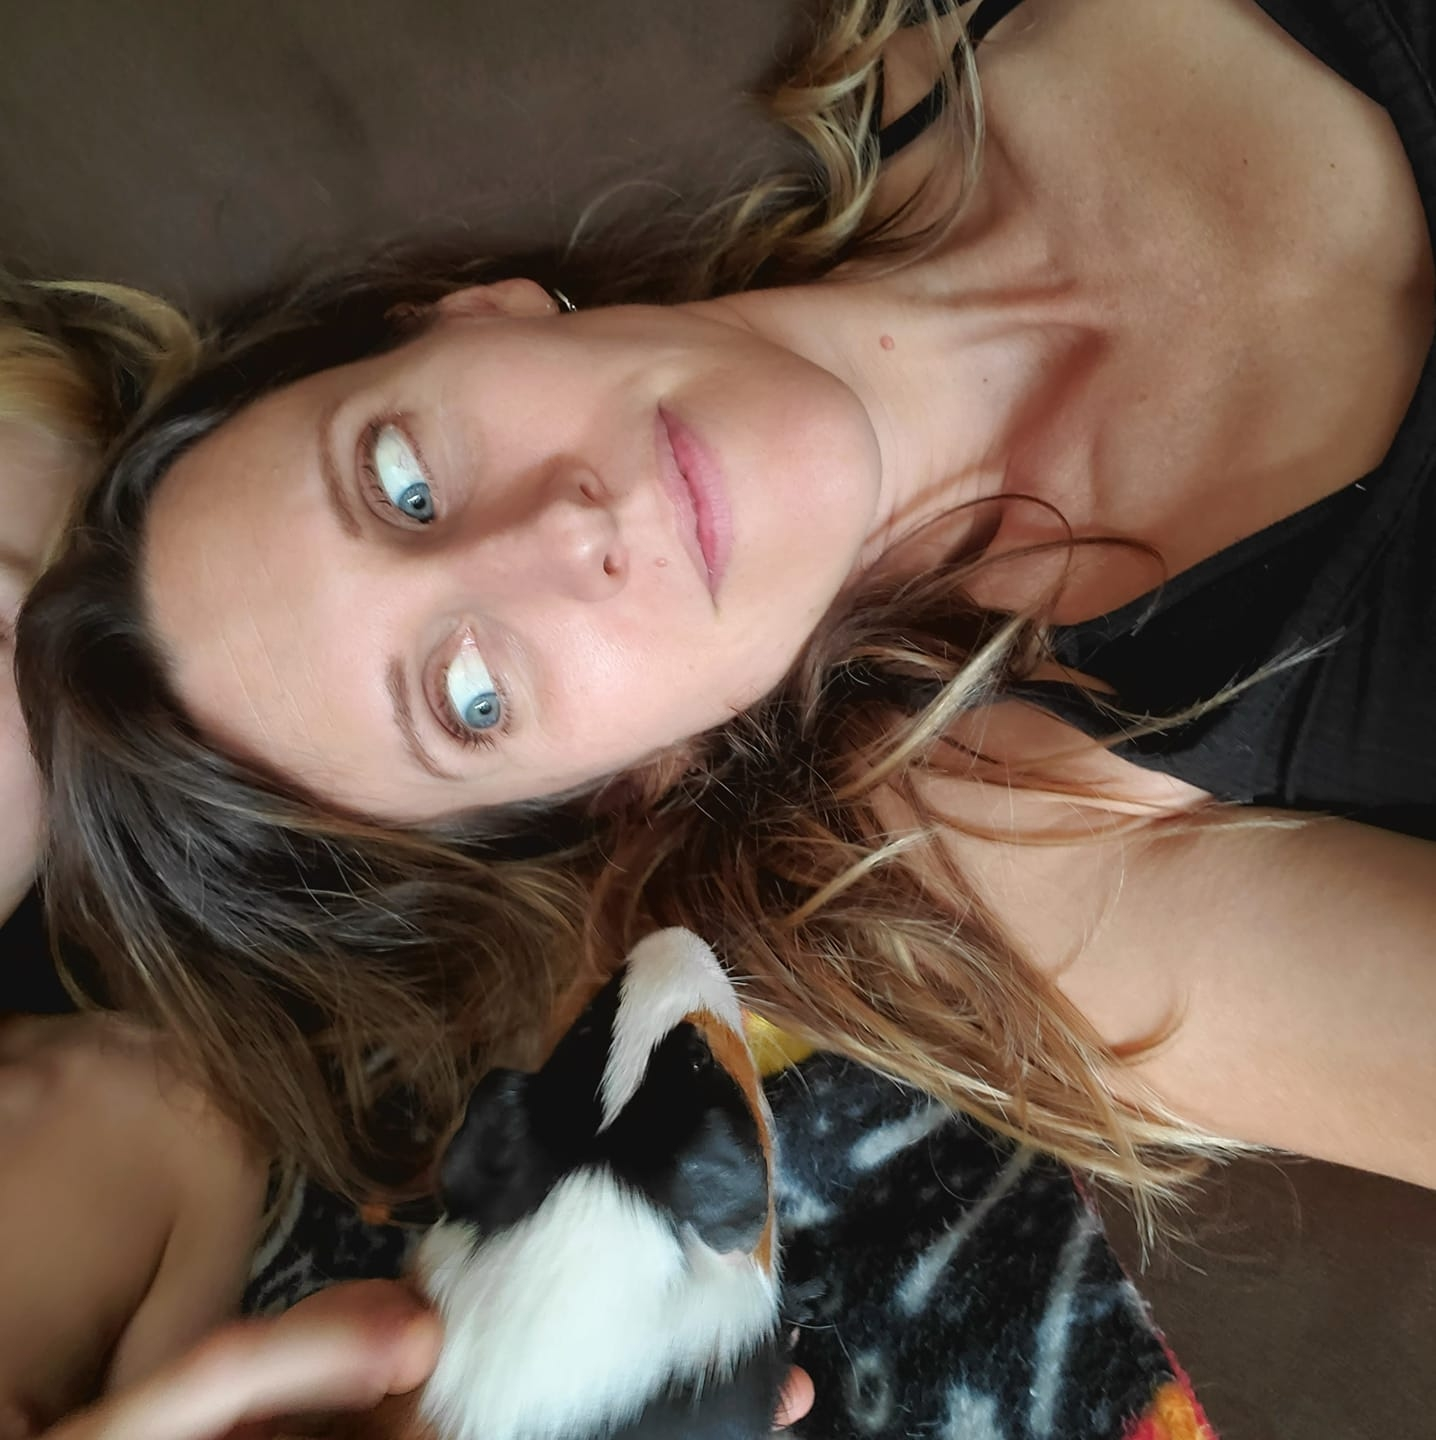 Self Portrait with Guinea Pigs - Photography by Christi Leeson